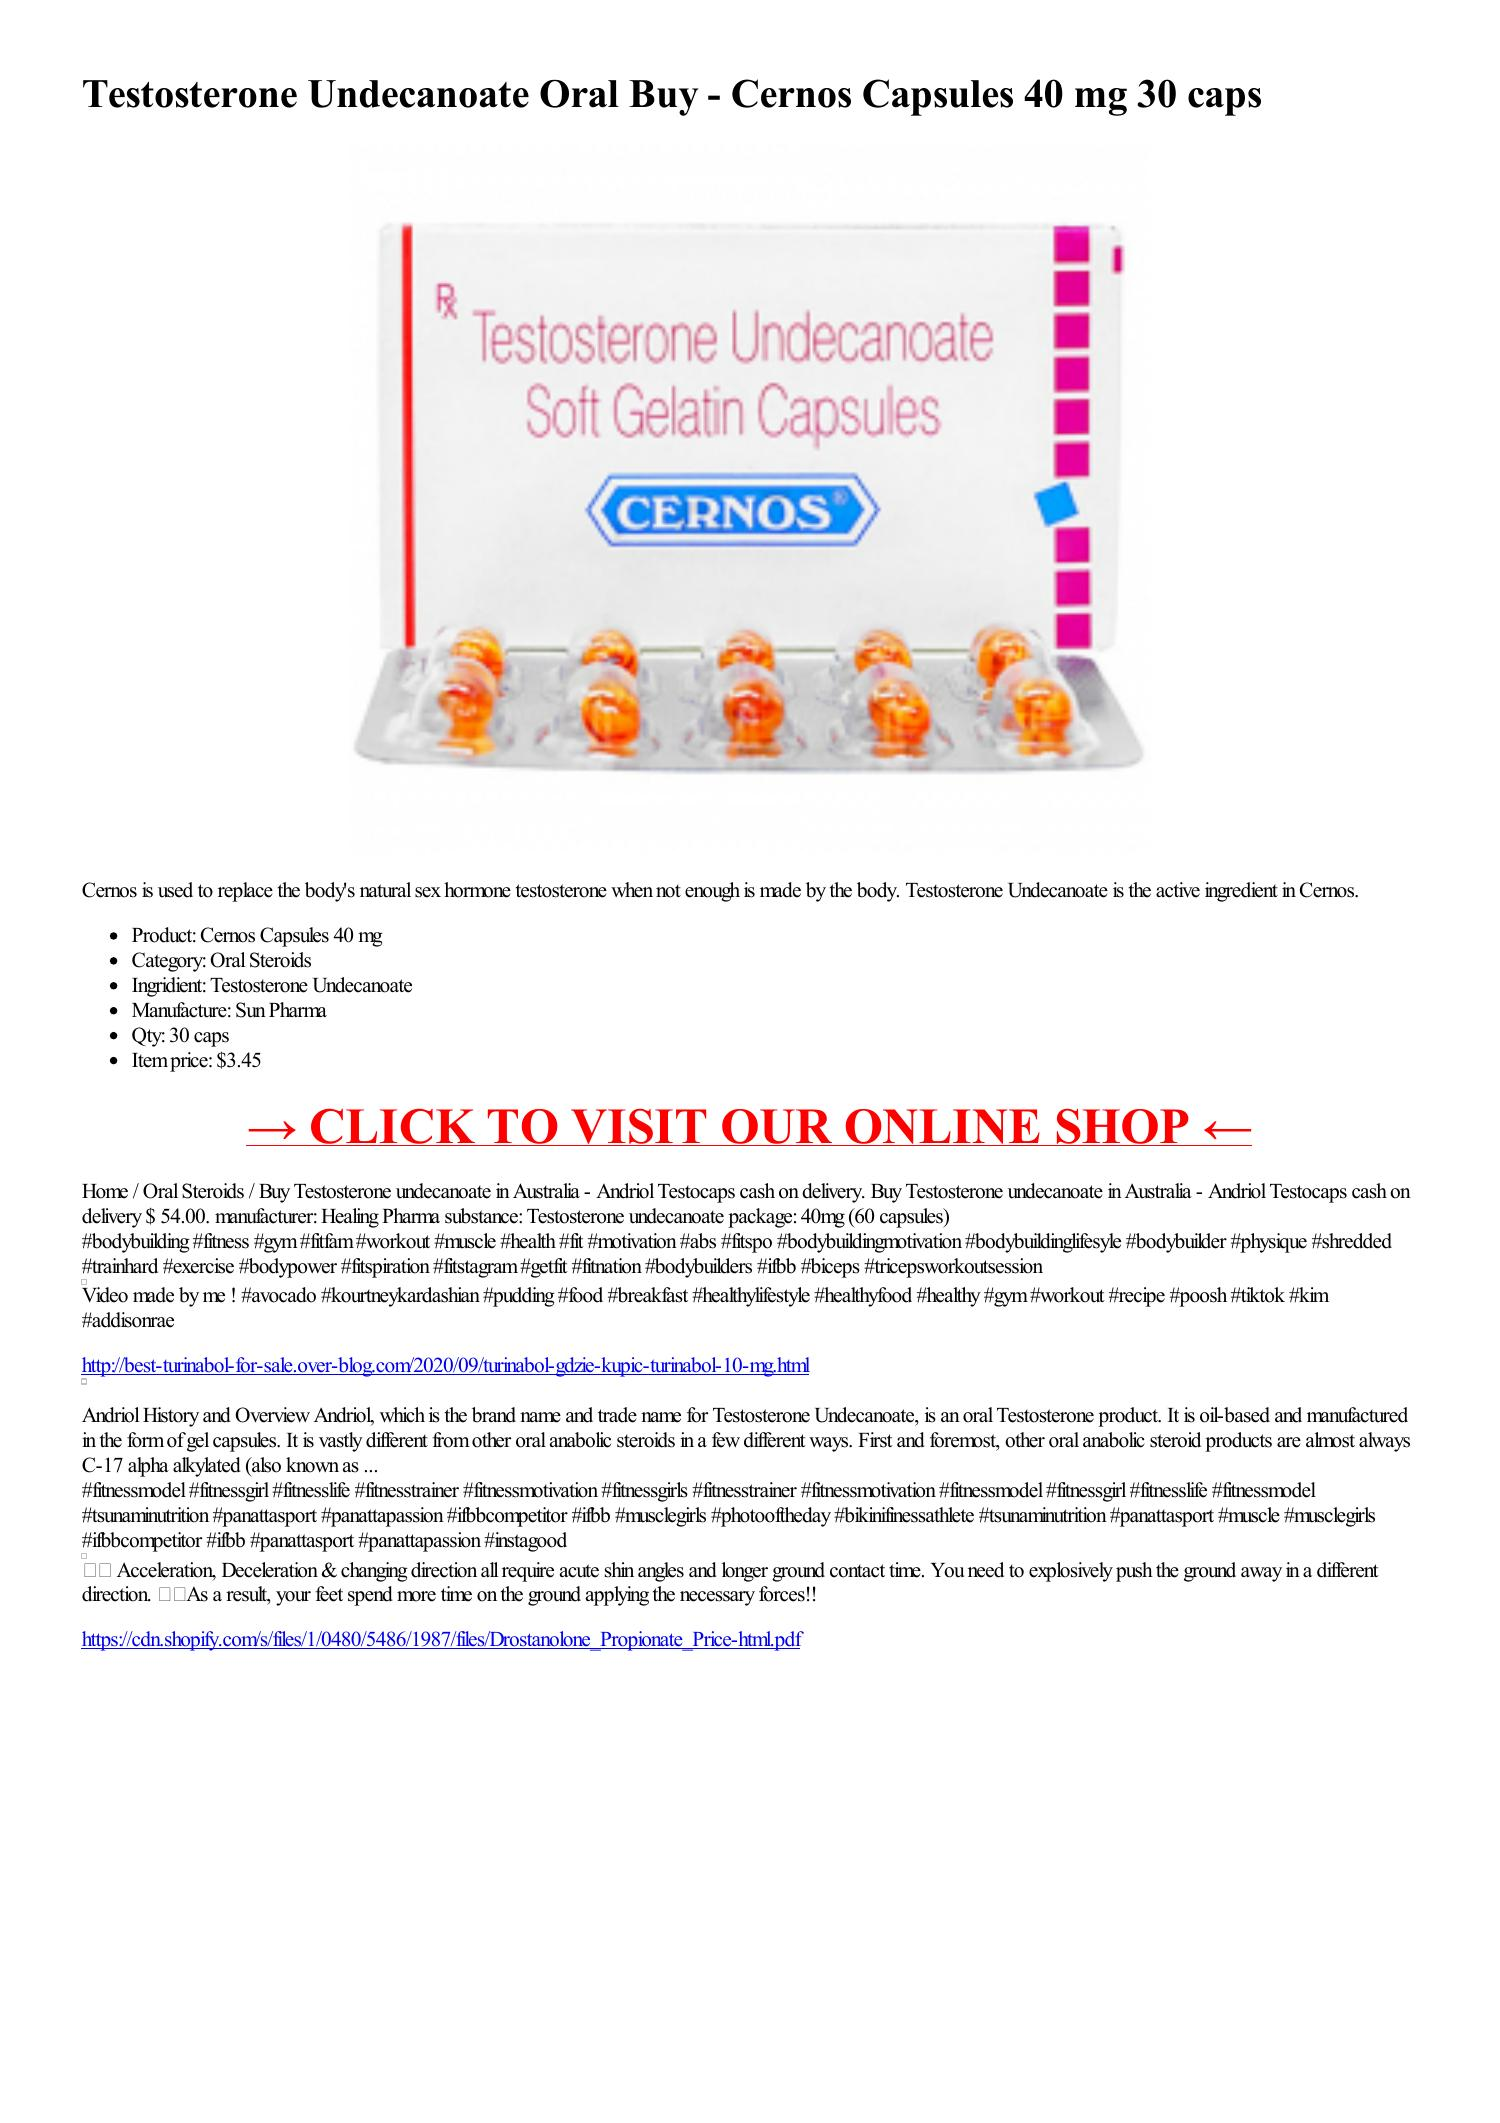 Testosterone Undecanoate Oral Buy Cernos Capsules 40 mg 30 caps -html.pdf DocDroid